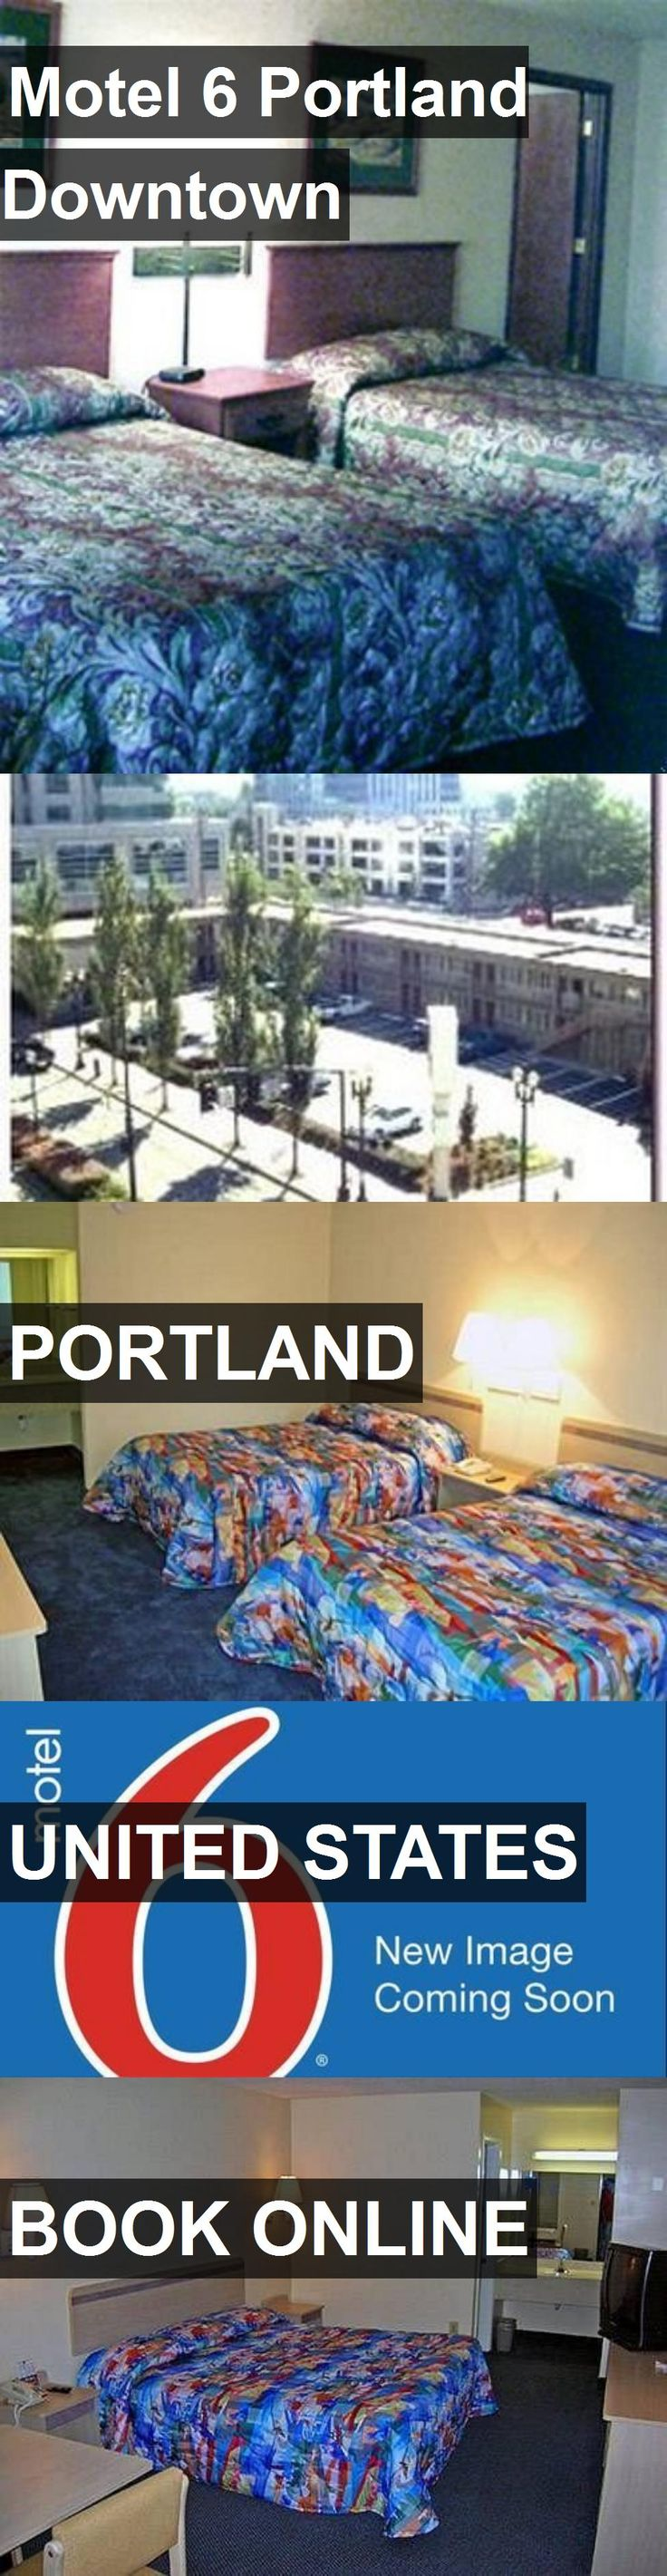 Hotel Motel 6 Portland Downtown in Portland, United States. For more information, photos, reviews and best prices please follow the link. #UnitedStates #Portland #travel #vacation #hotel